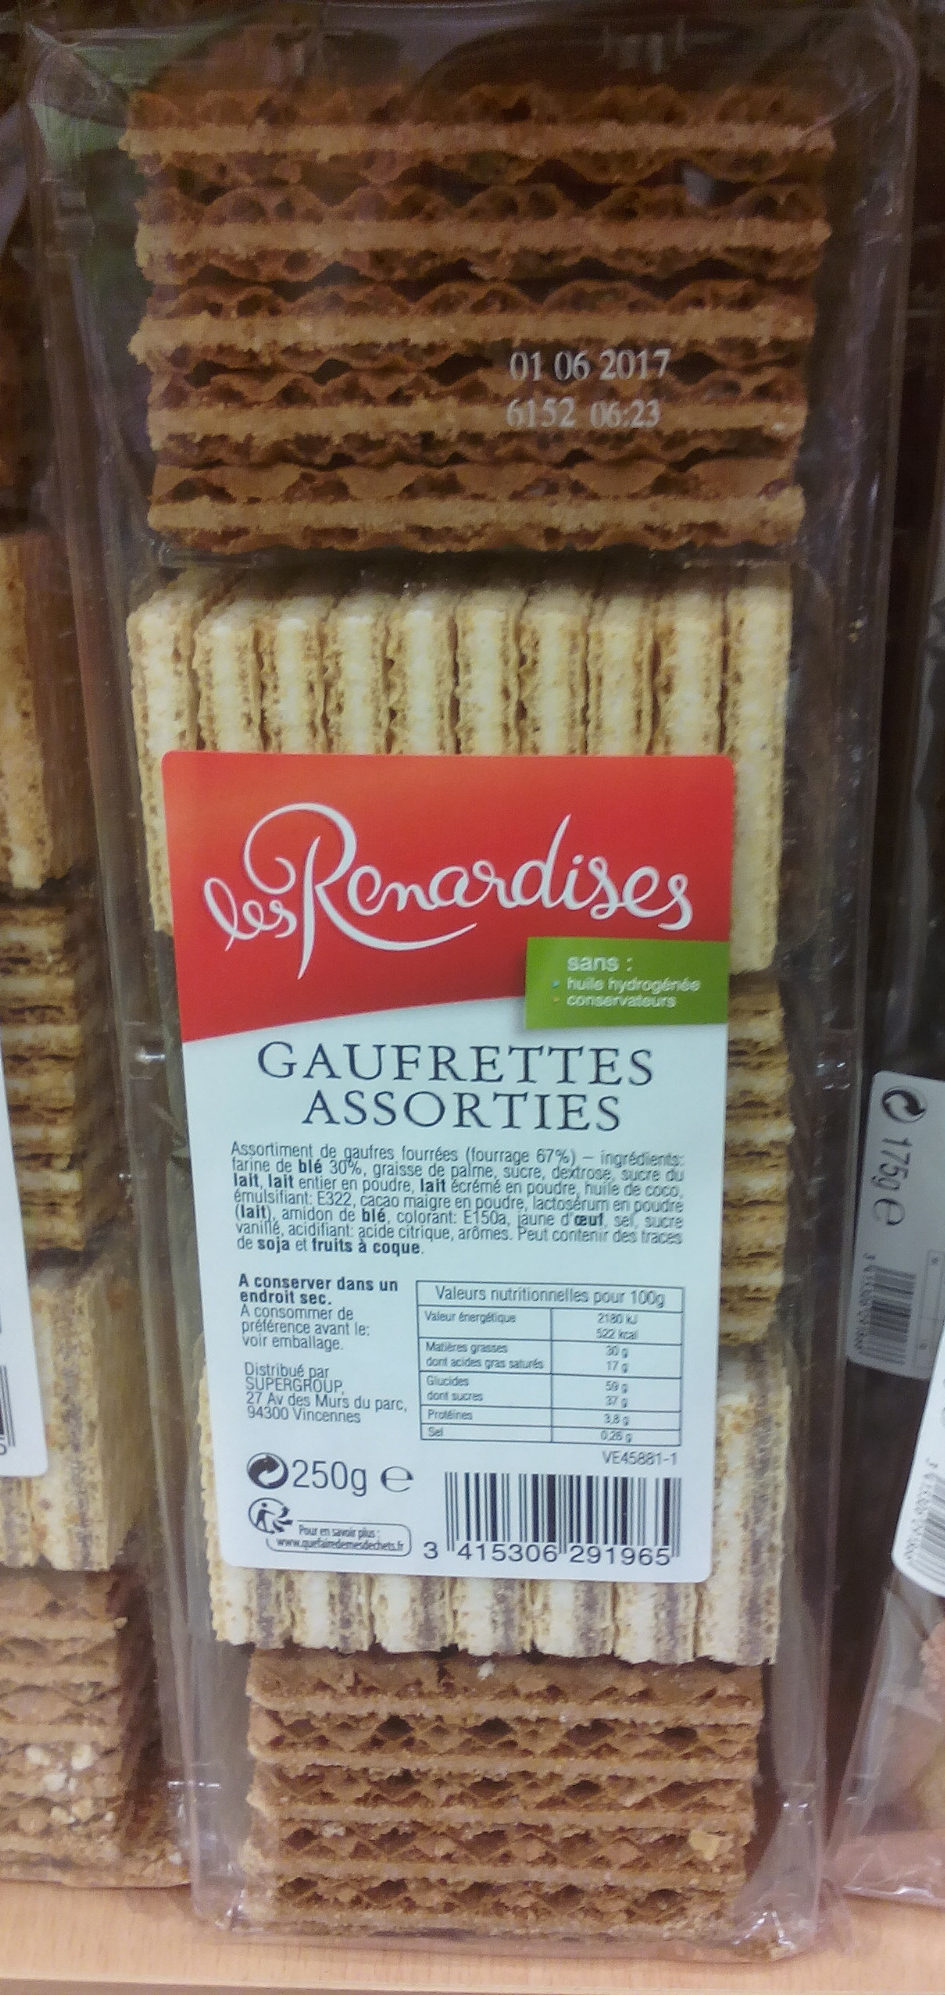 Gaufrettes Assorties - Product - fr